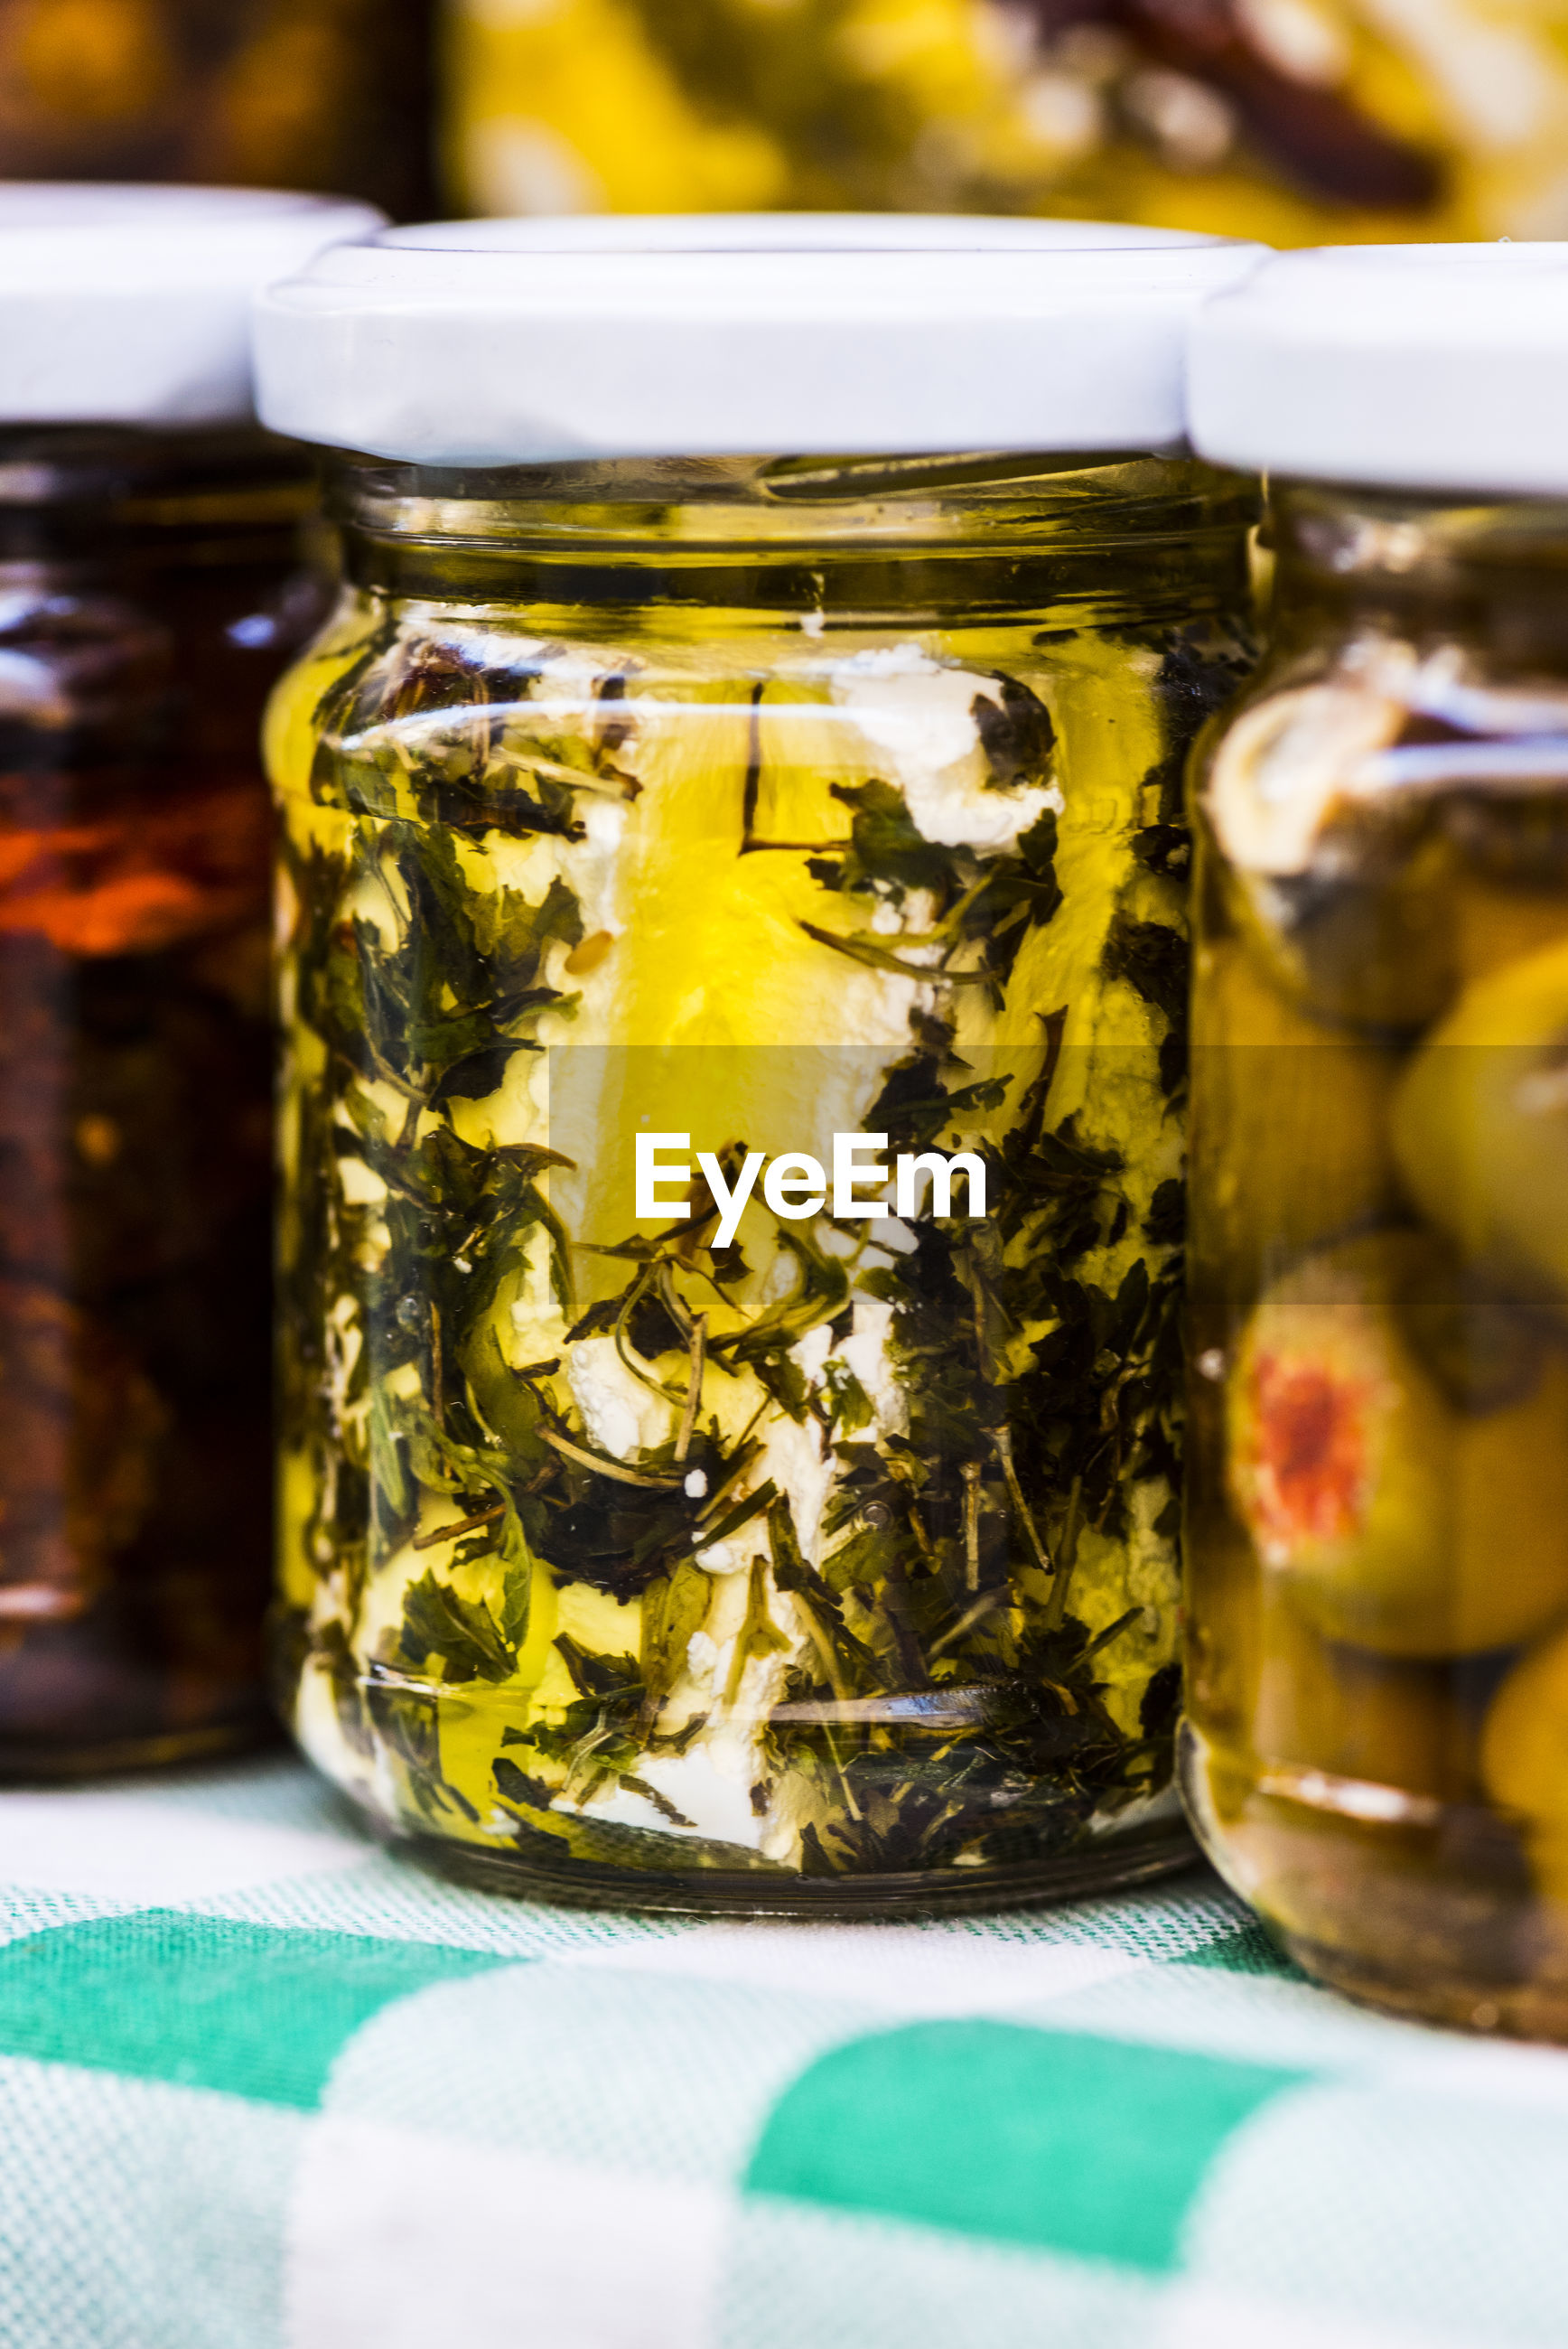 Close-up of pickles in glass jars on table